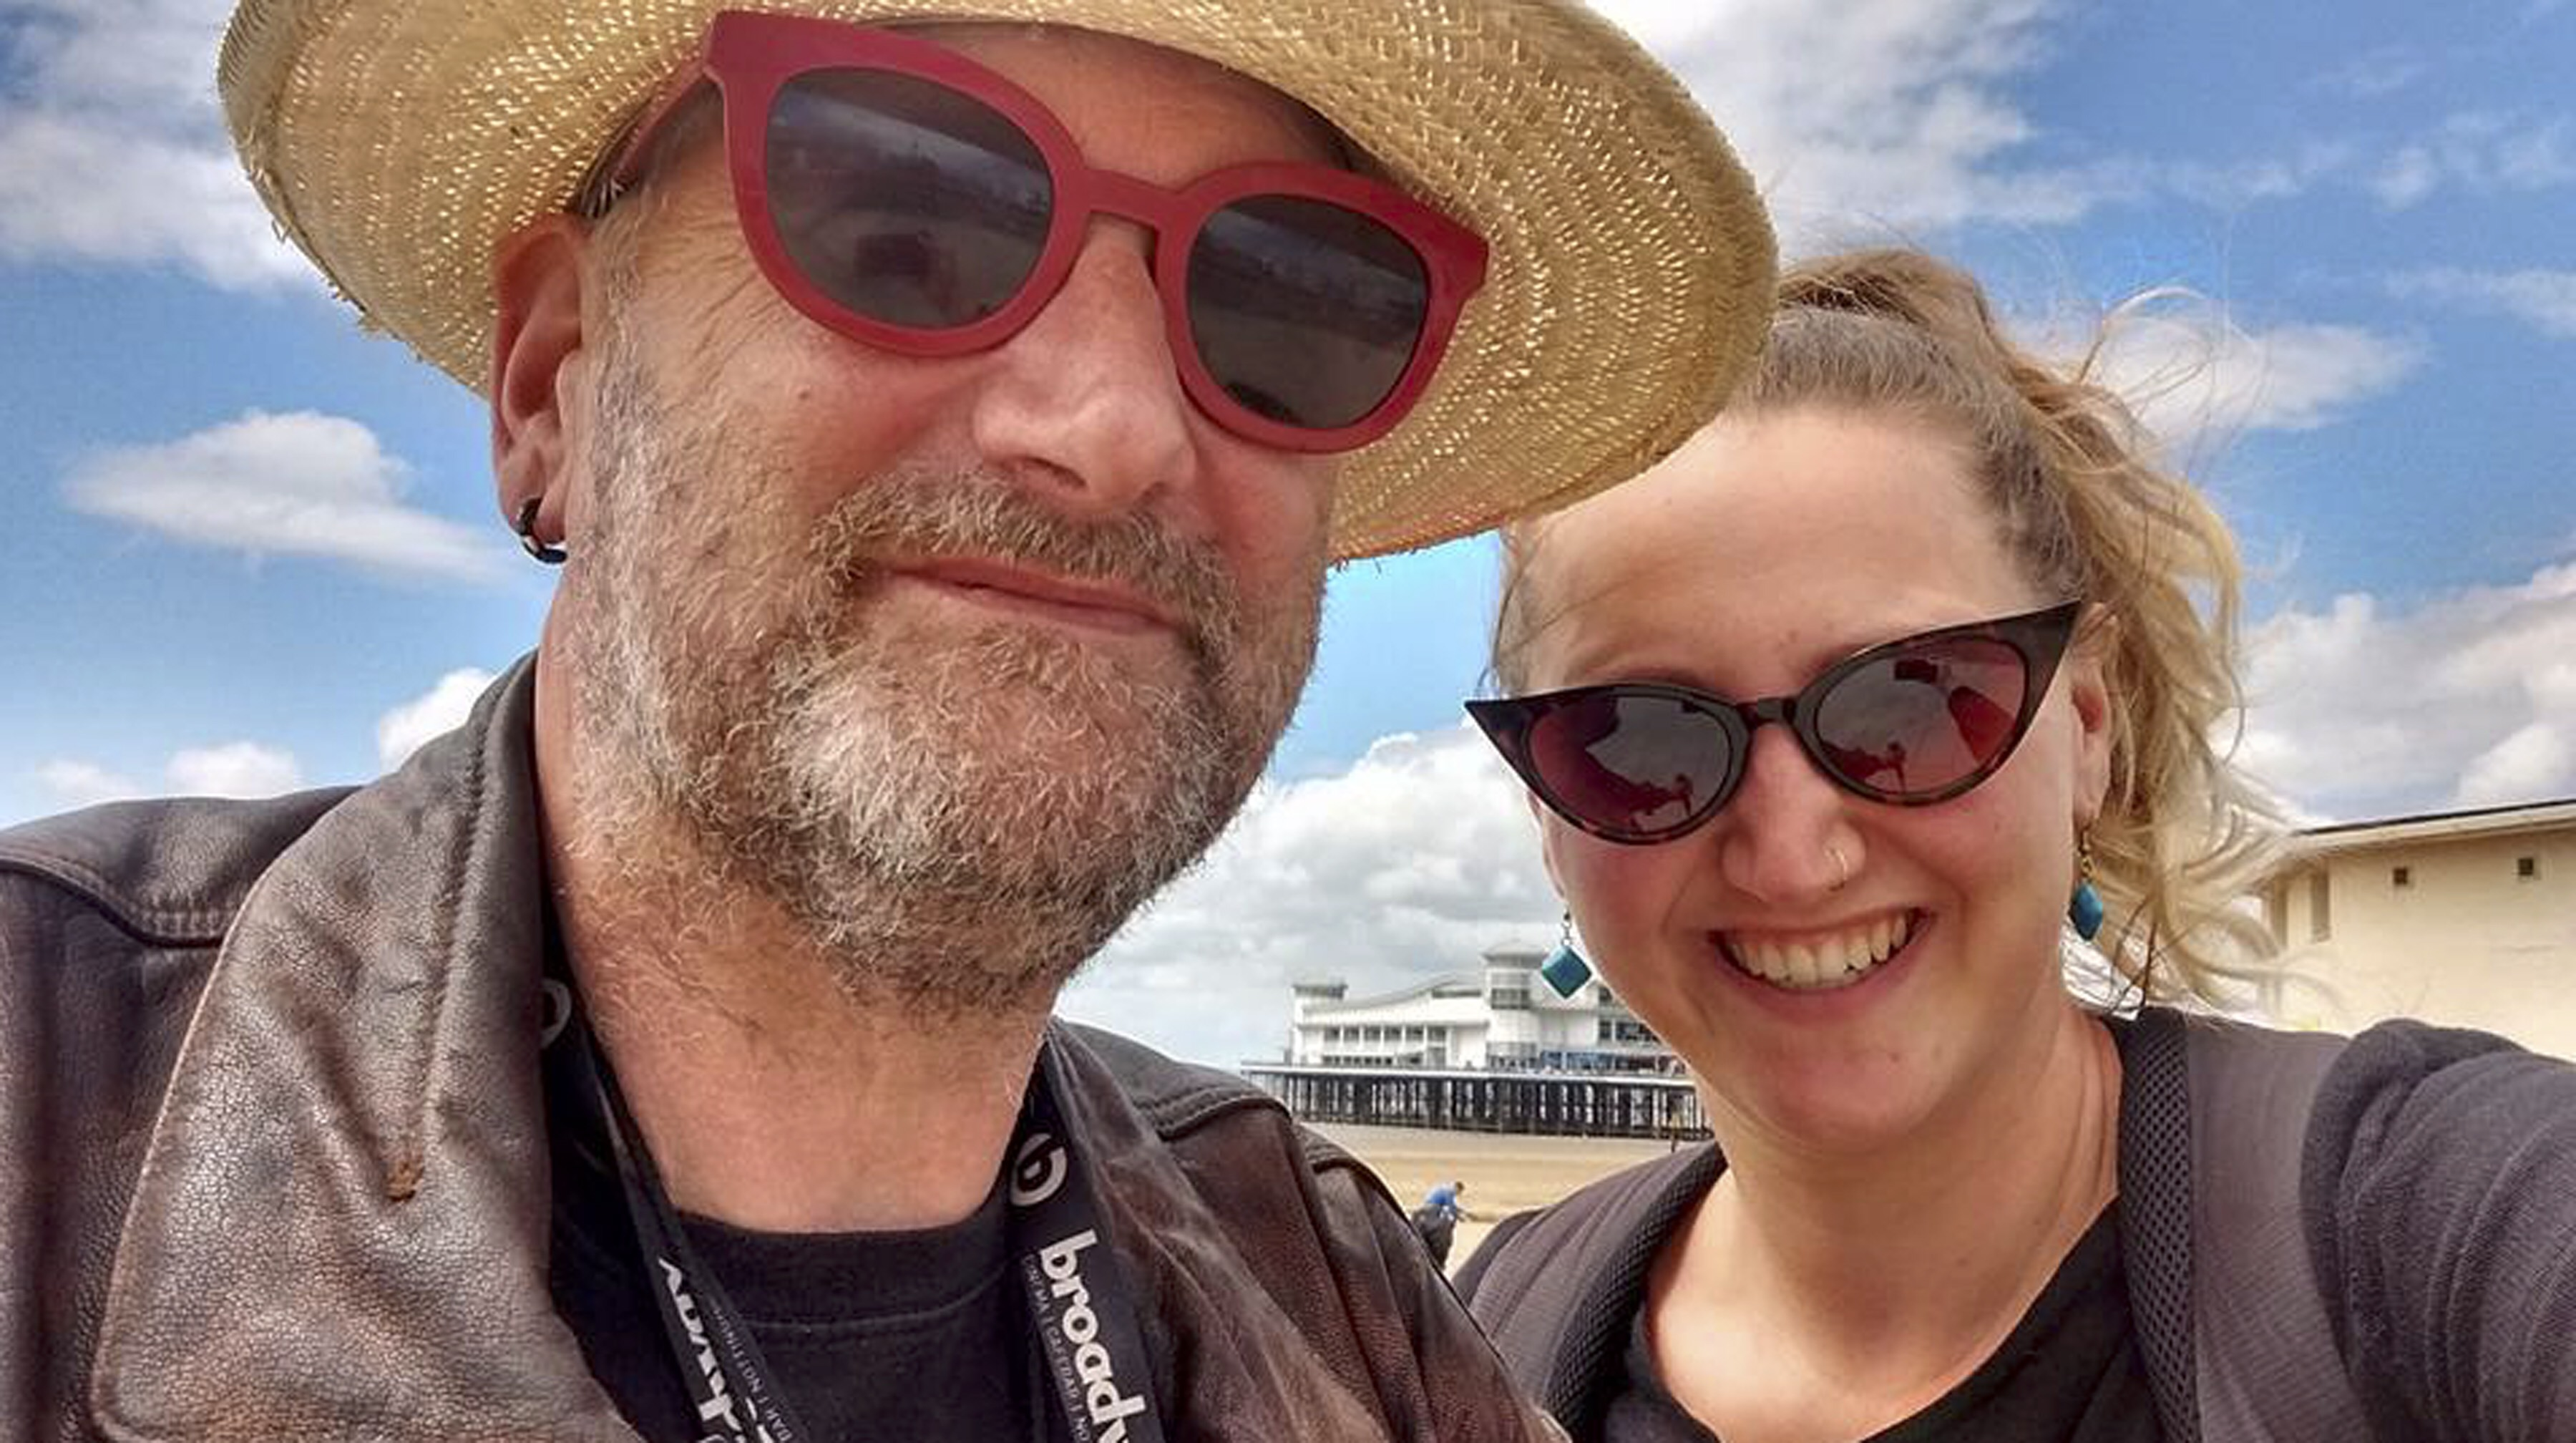 Tony with his daughter Amy on the beach